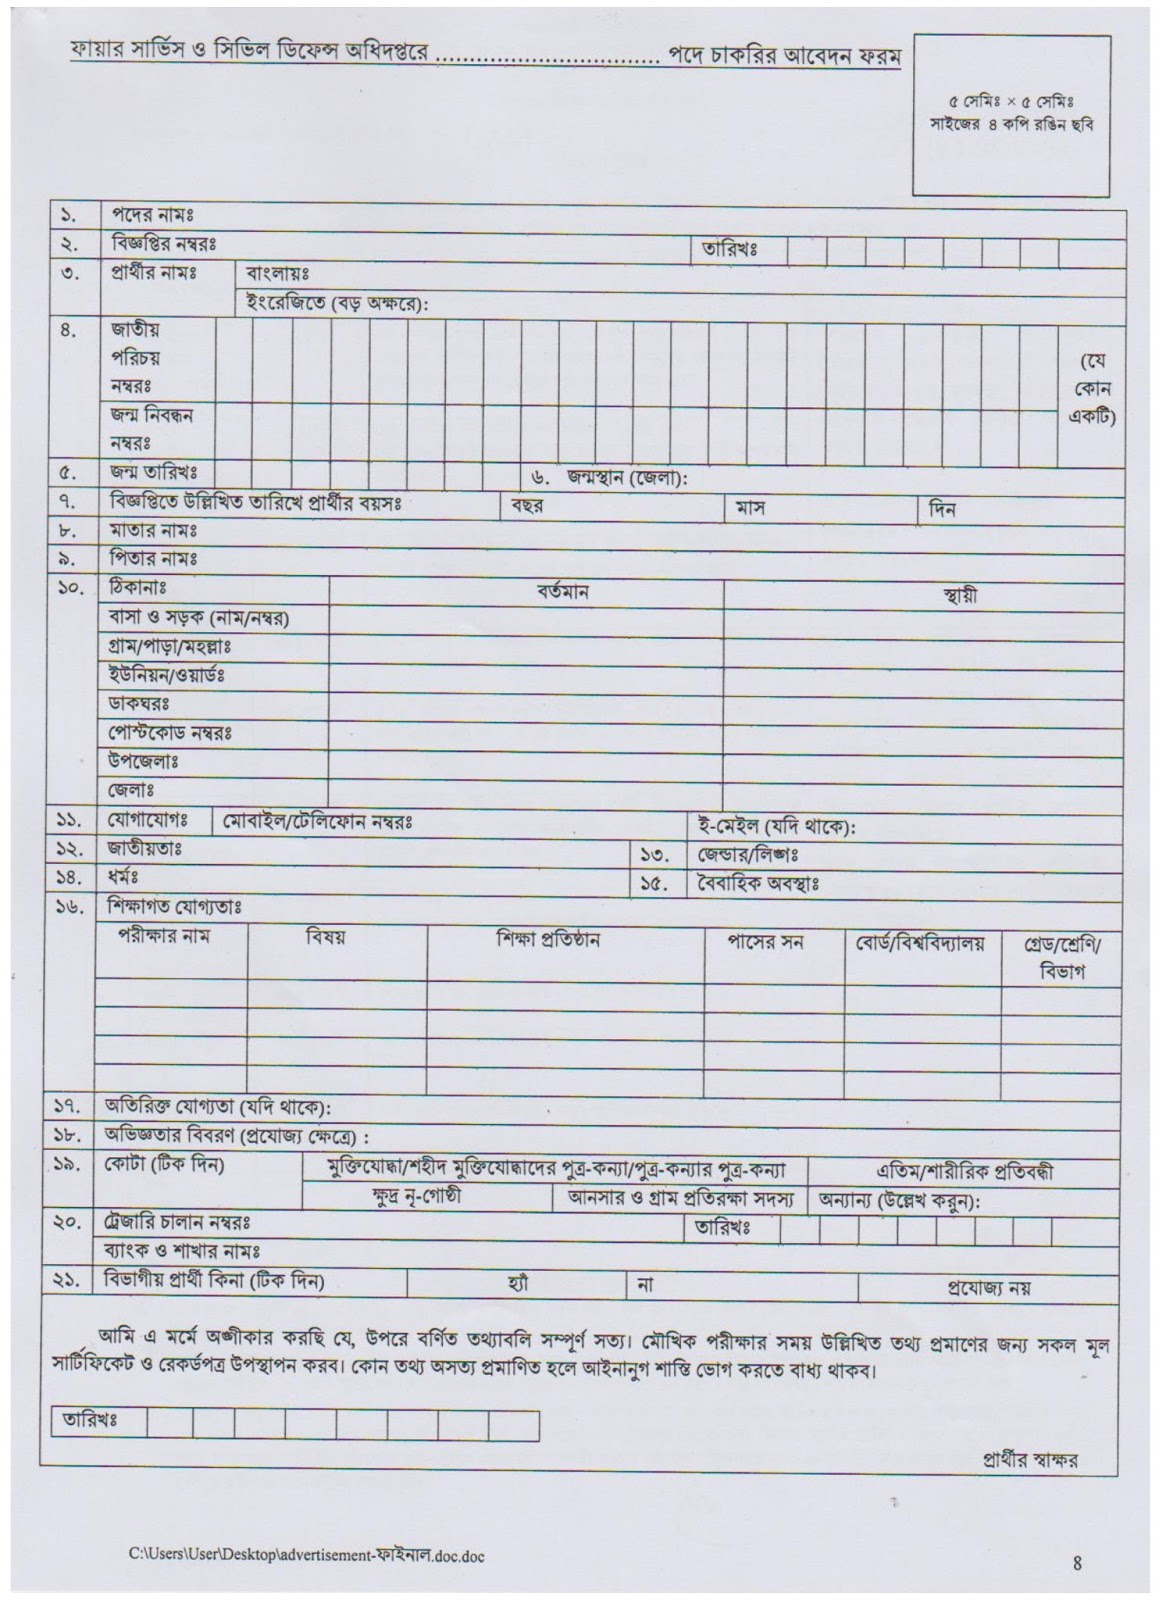 Bangladesh Fire Service and Civil Defence (FSCD) Recruitment Application Form